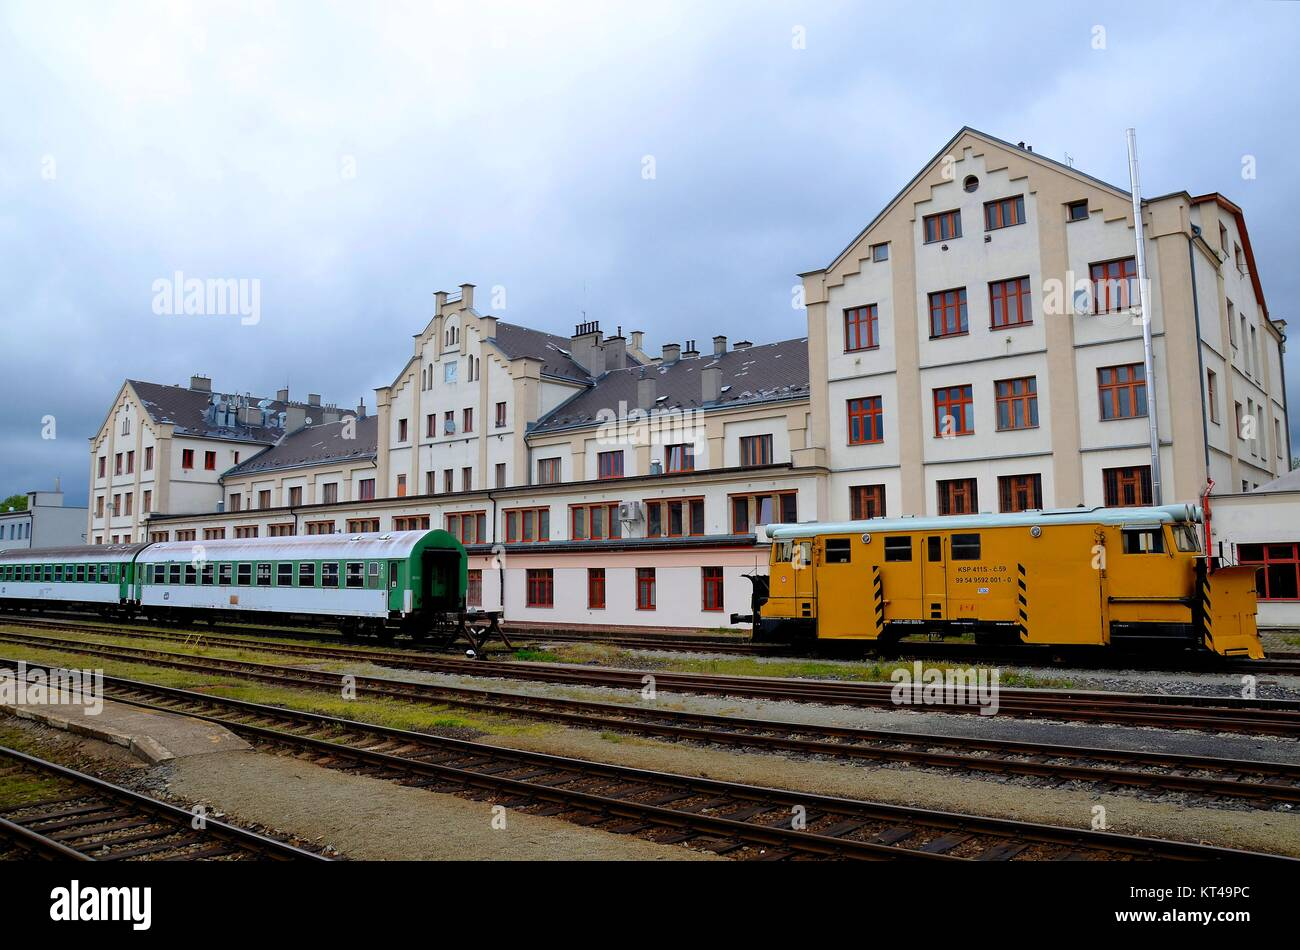 In the town of Liberec (Reichenberg) in the Czech Republic: the railway station - Stock Image